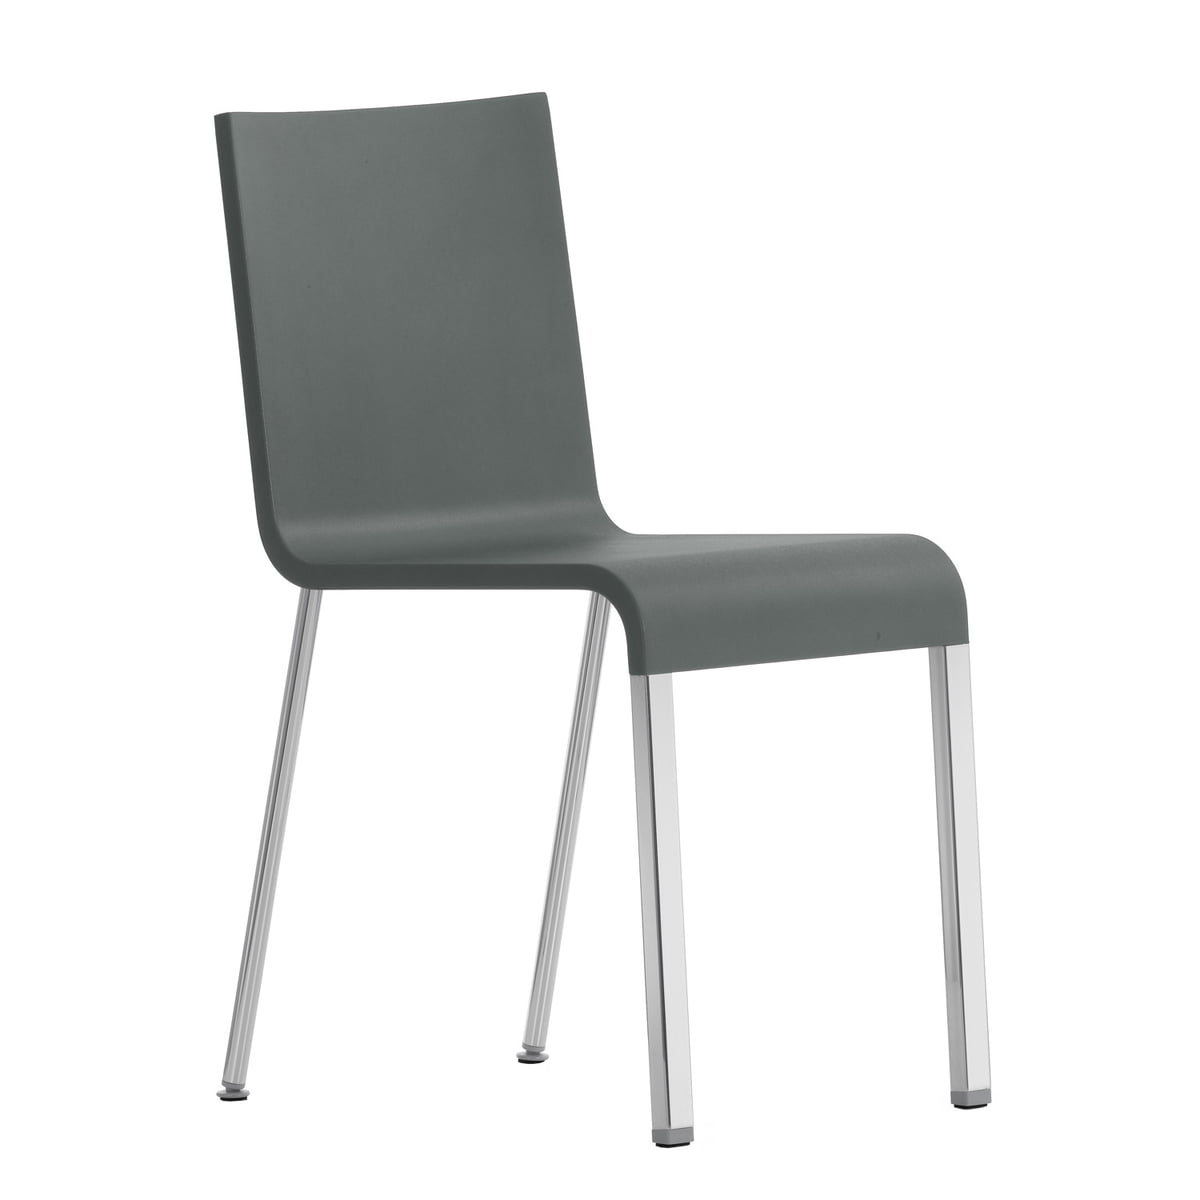 Vitra 03 Chair Not Stackable Silver Ral 9006 Grey